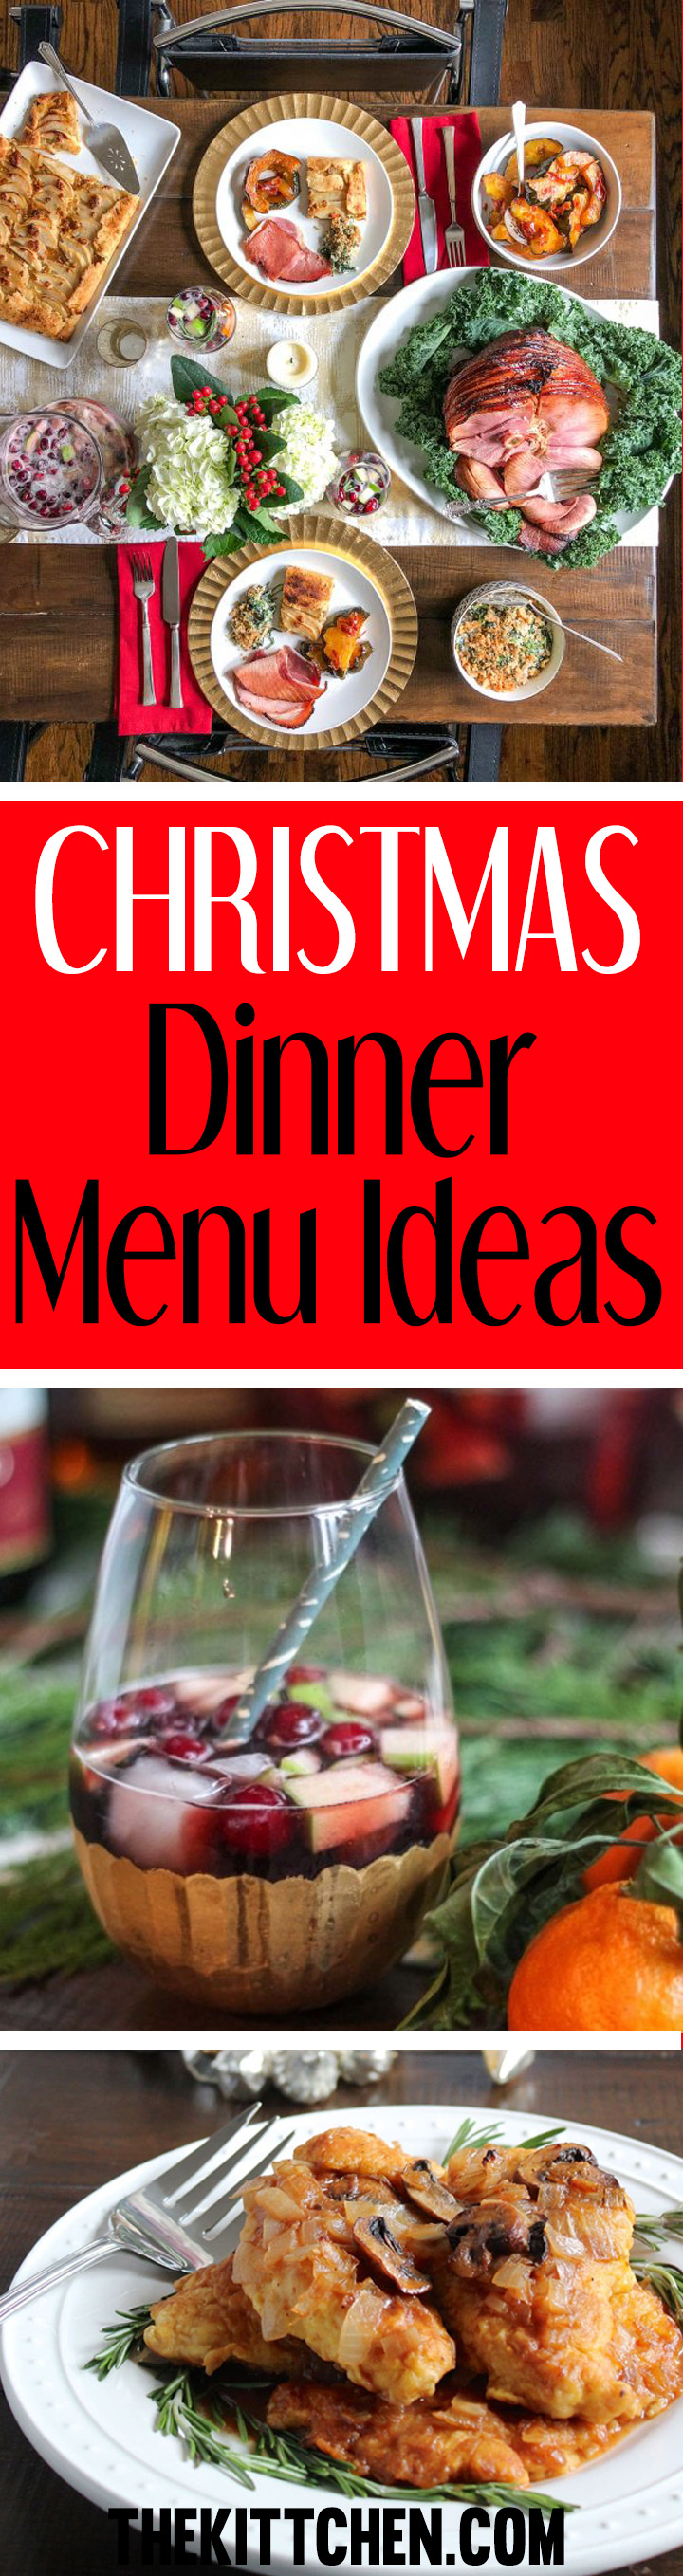 These Christmas dinner menu ideas will help you plan a memorable meal for your family.